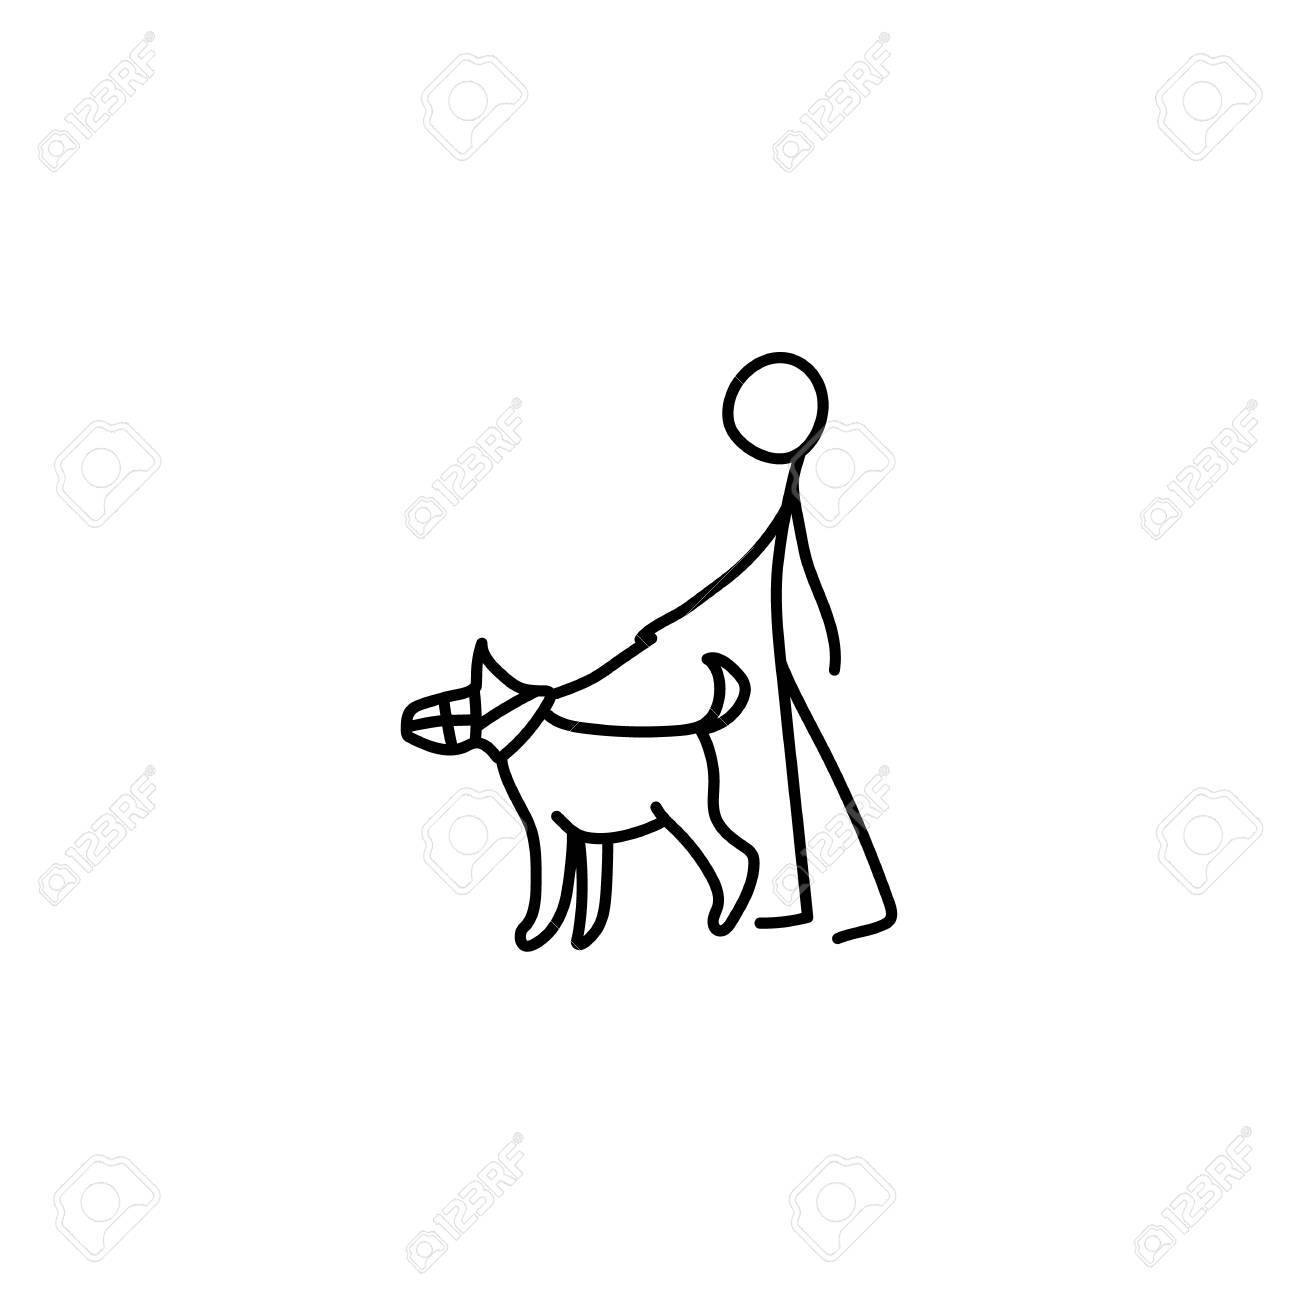 1300x1300 Stick Figure Man Dog Icon Royalty Free Cliparts, Vectors,